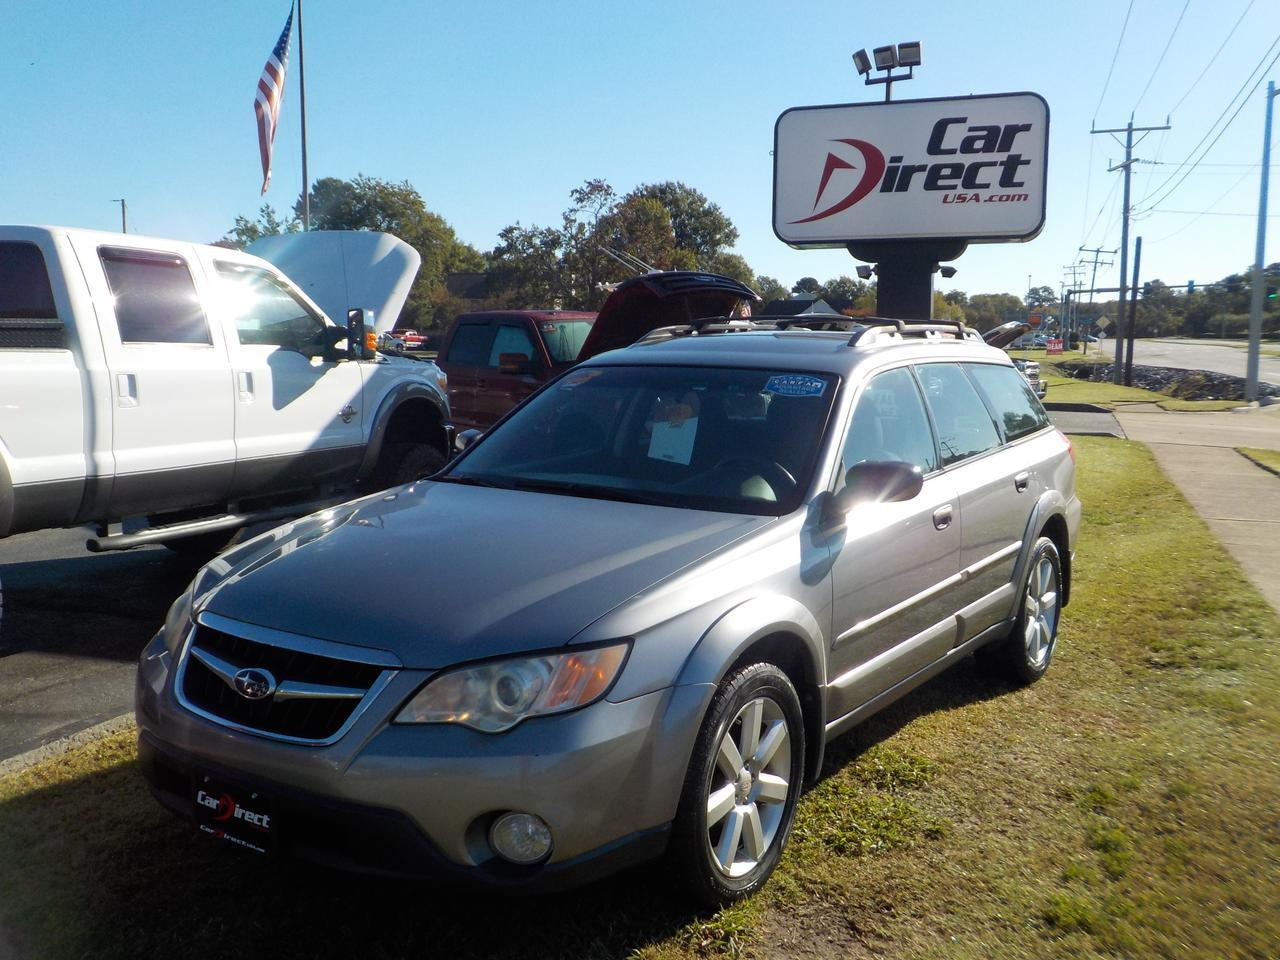 2008 SUBARU OUTBACK LL BEAN EDITION, HEATED SEATS, ROOF RACKS, CRUISE CONTROL!